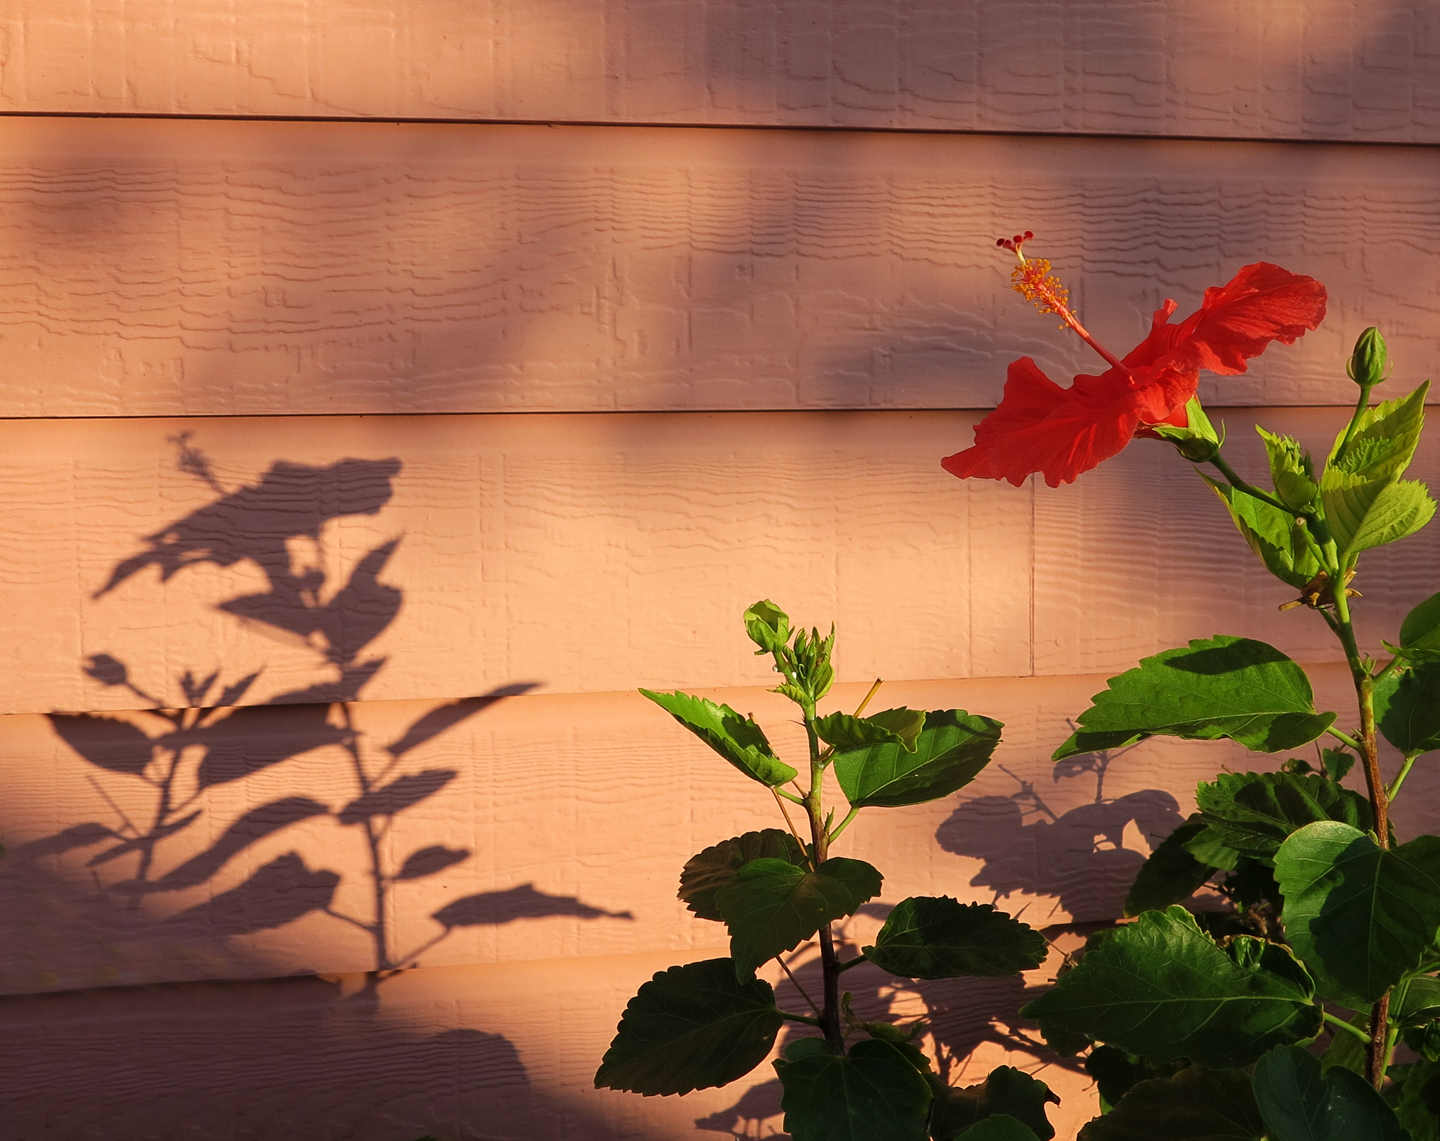 Hibiscus at sunset, Green Turtle Cay, Bahamas.